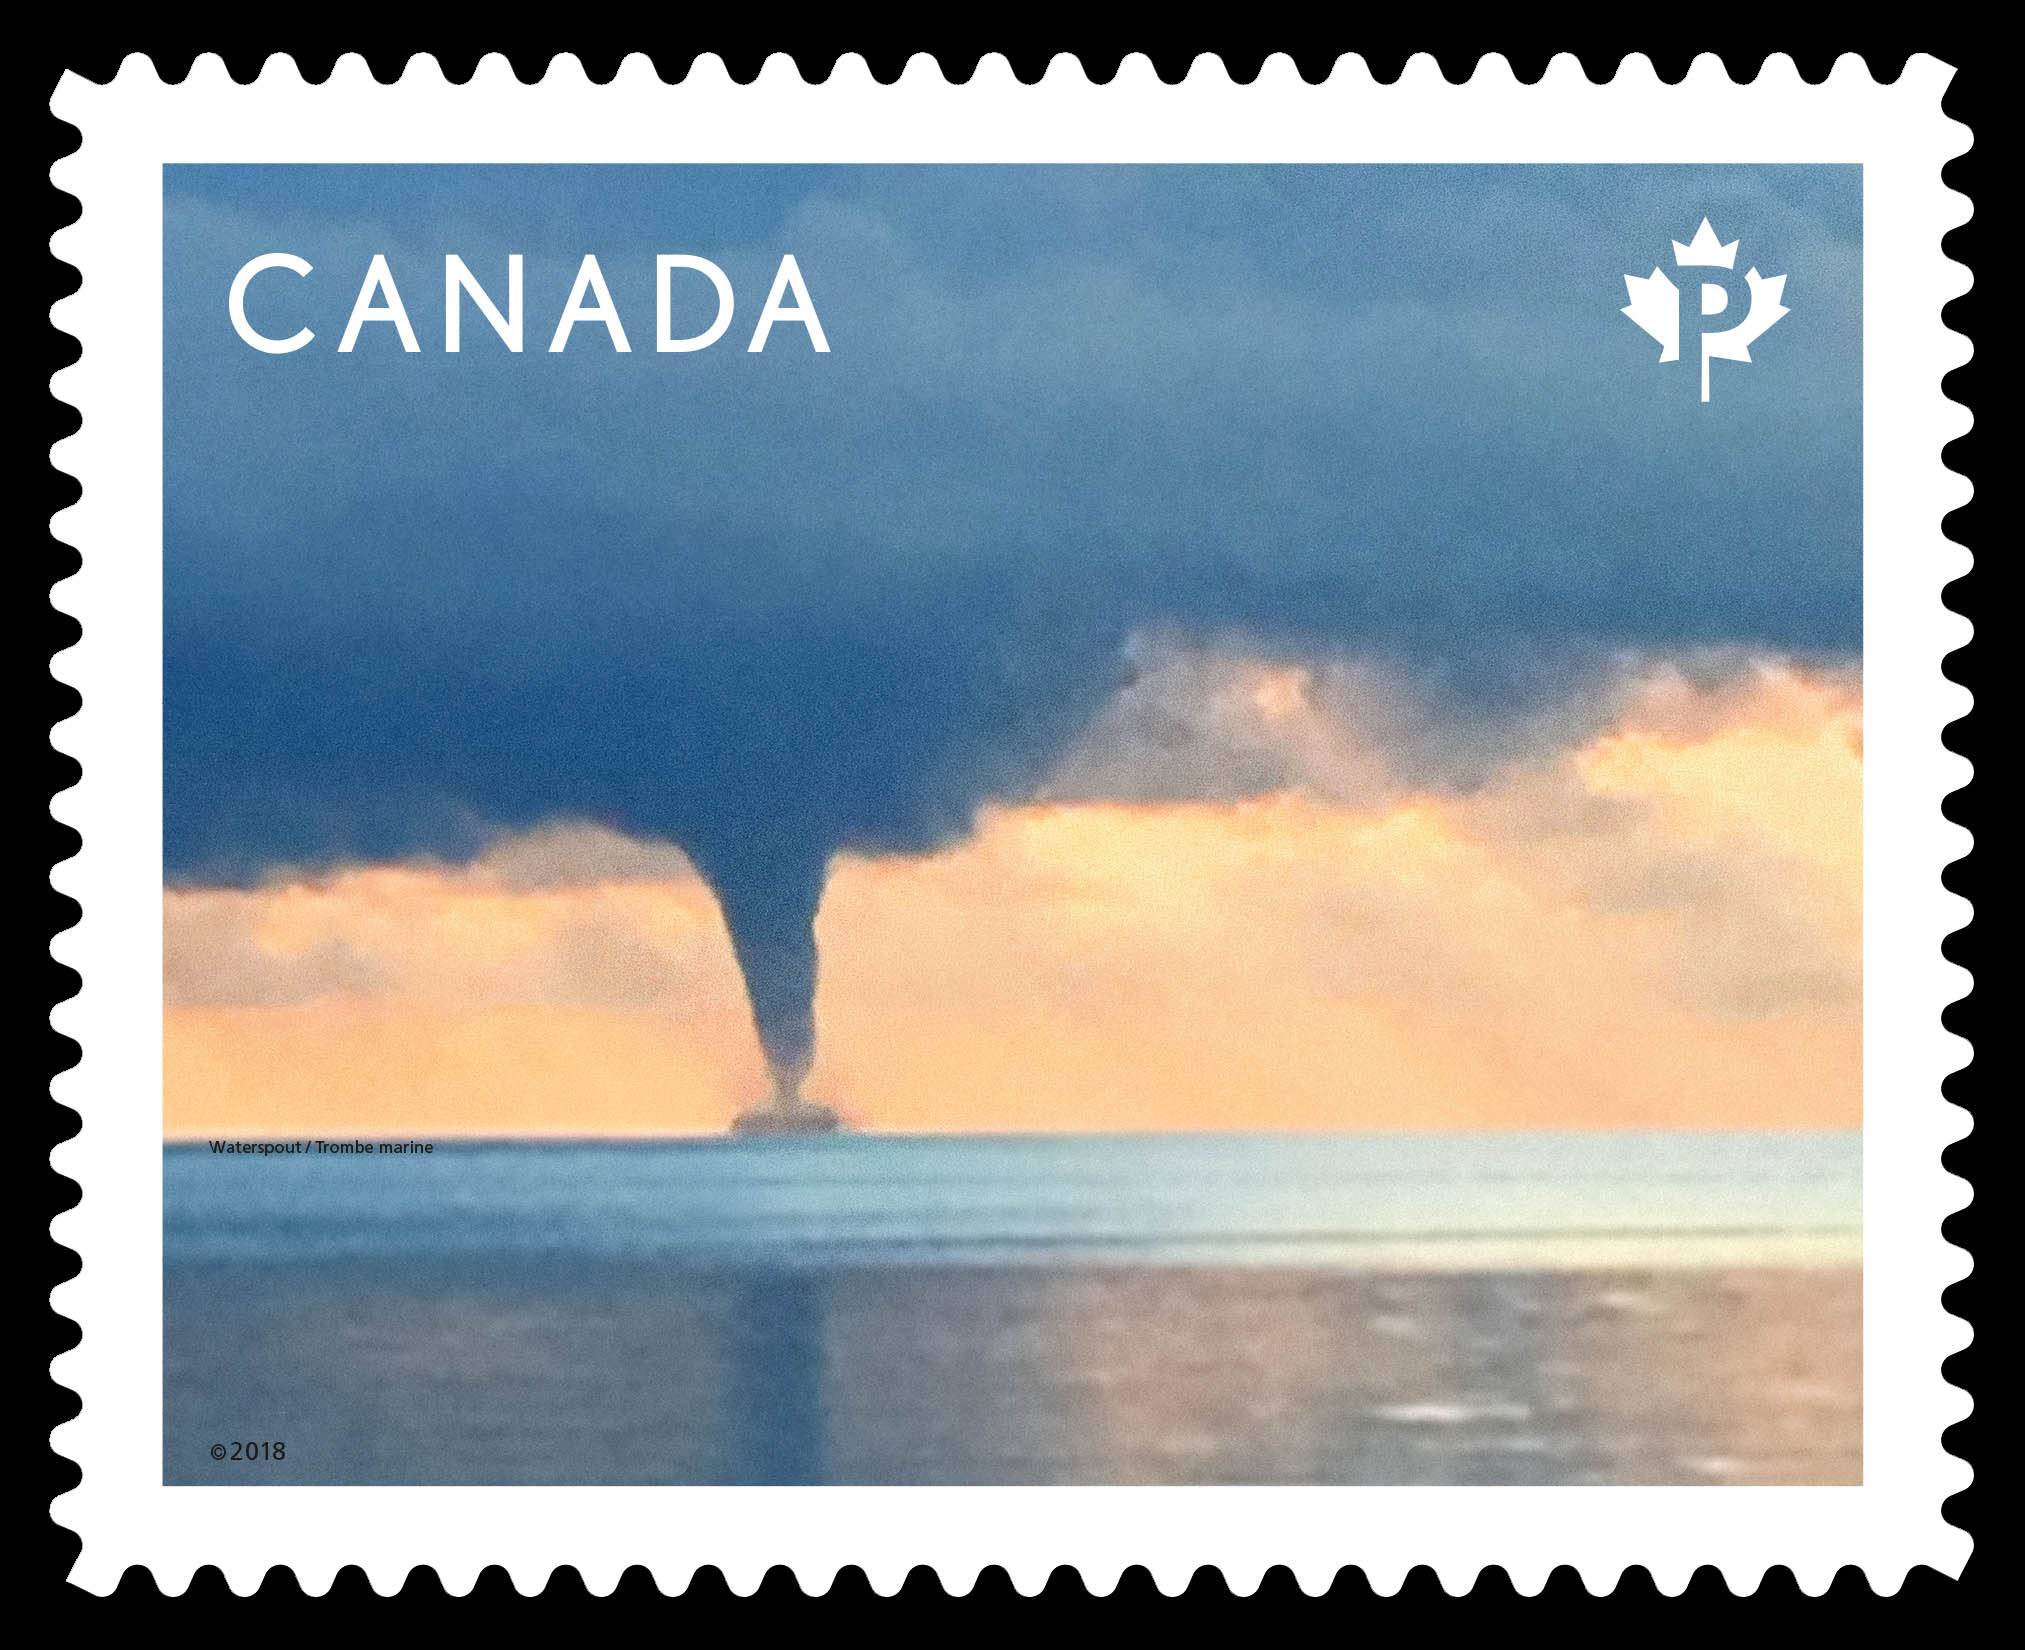 Waterspout Canada Postage Stamp | Weather Wonders